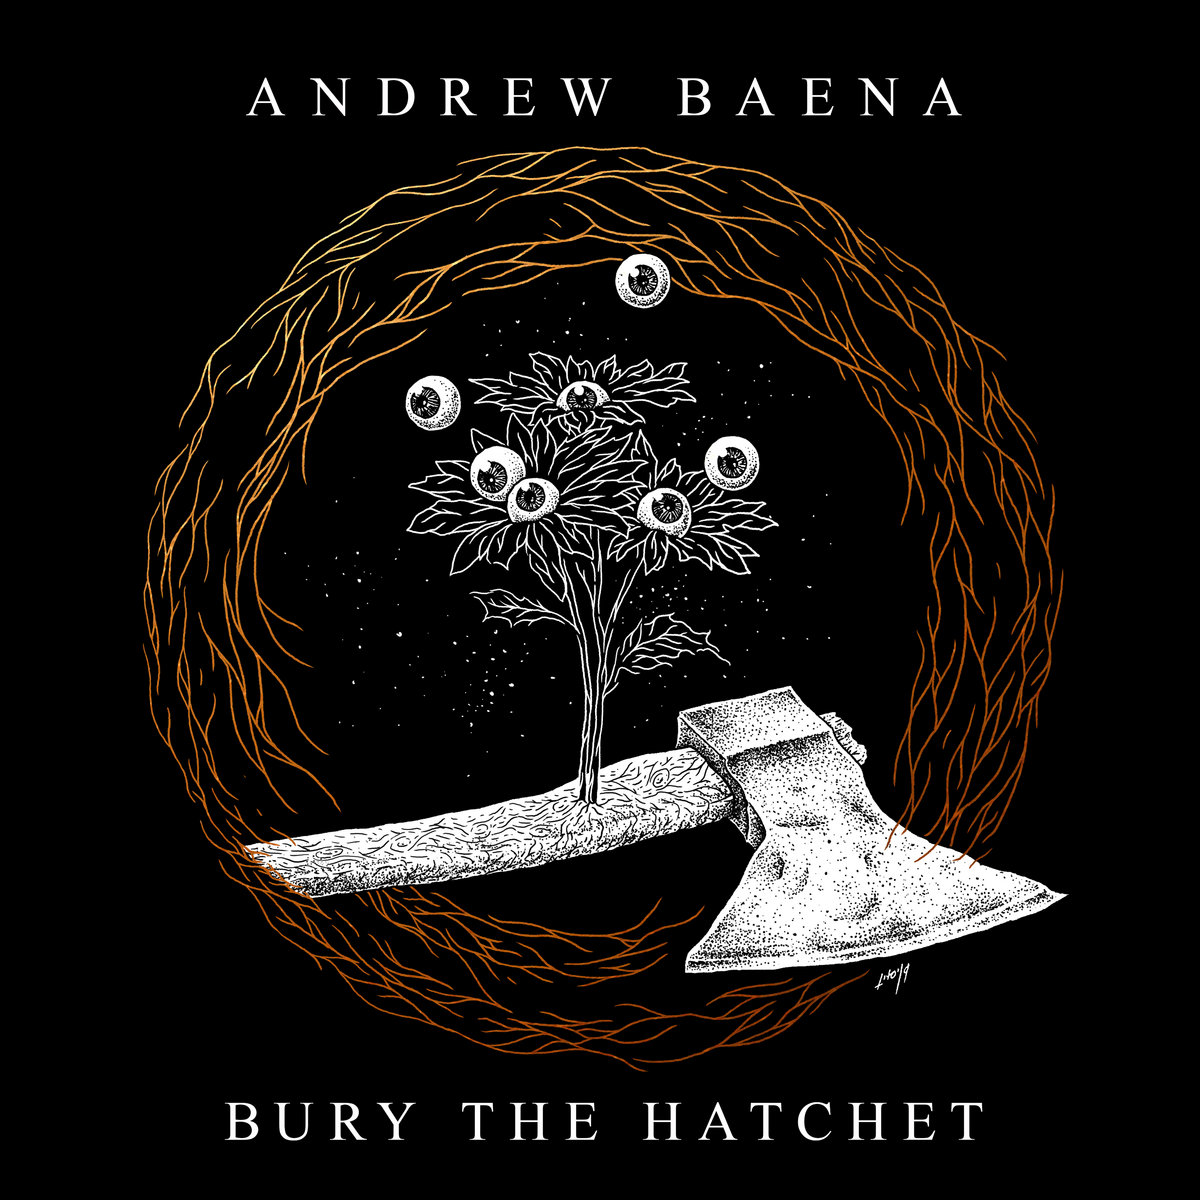 A kis béna | Andrew Baena – Bury The Hatchet (EP, 2019)